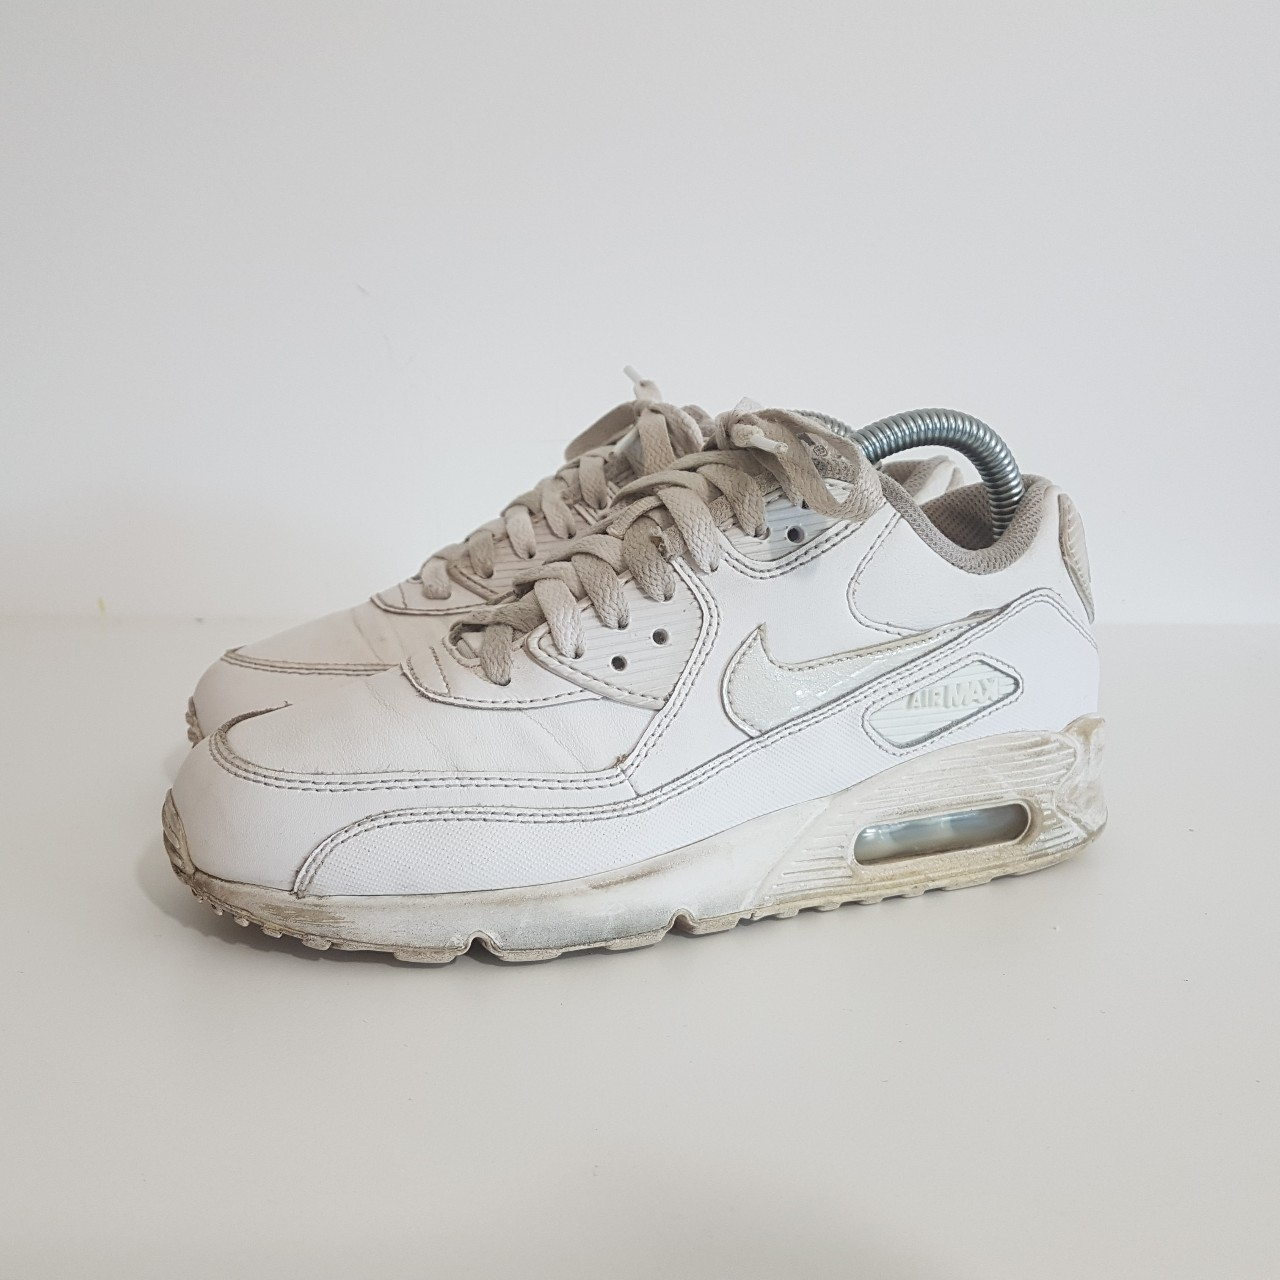 OFF WHITE X NIKE THE 10 AIR MAX 90 AA7293 001 off white X Kie Ney AMAX 90 low frequency cut sneakers black size US10.5(28.5cm) present gift